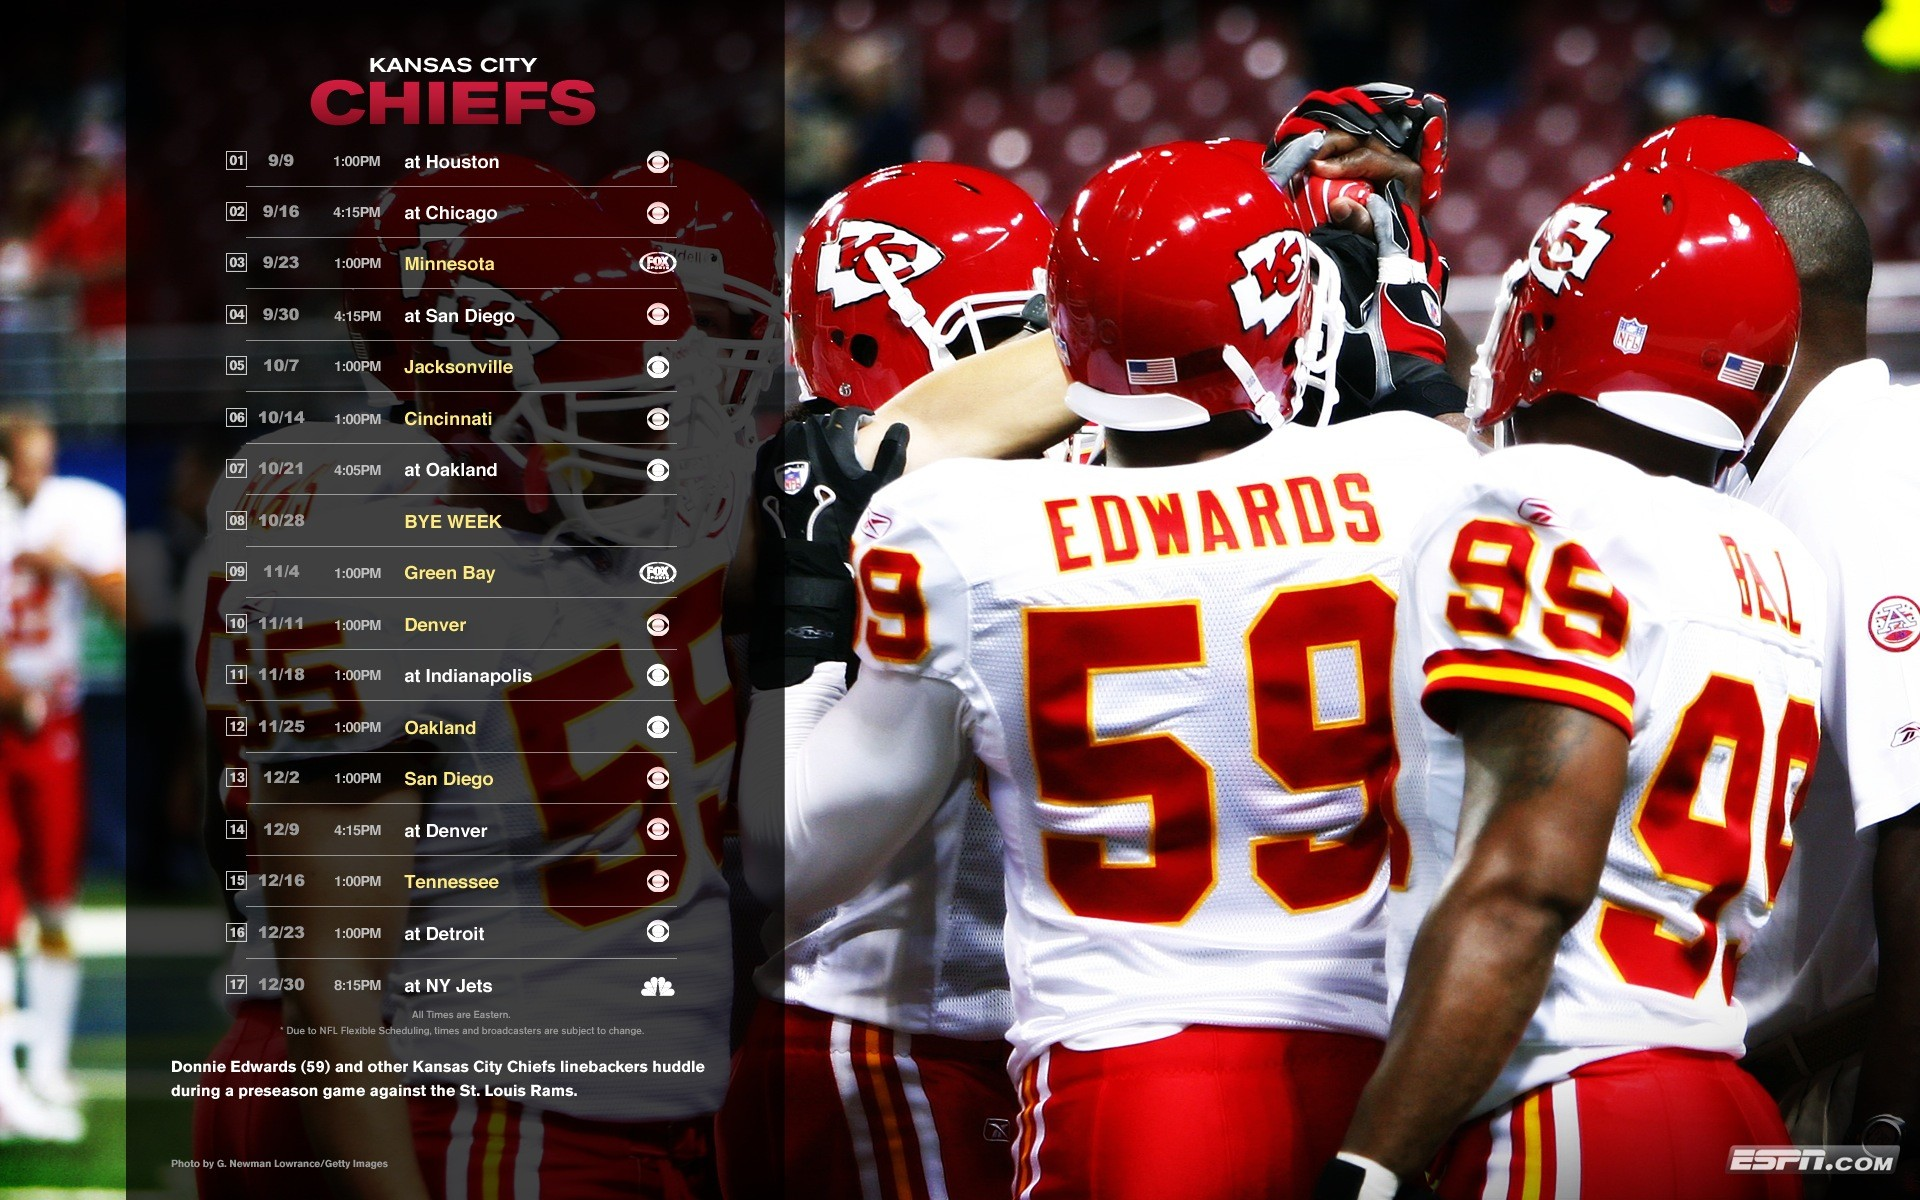 kc chiefs wallpaper and screensavers 64 images